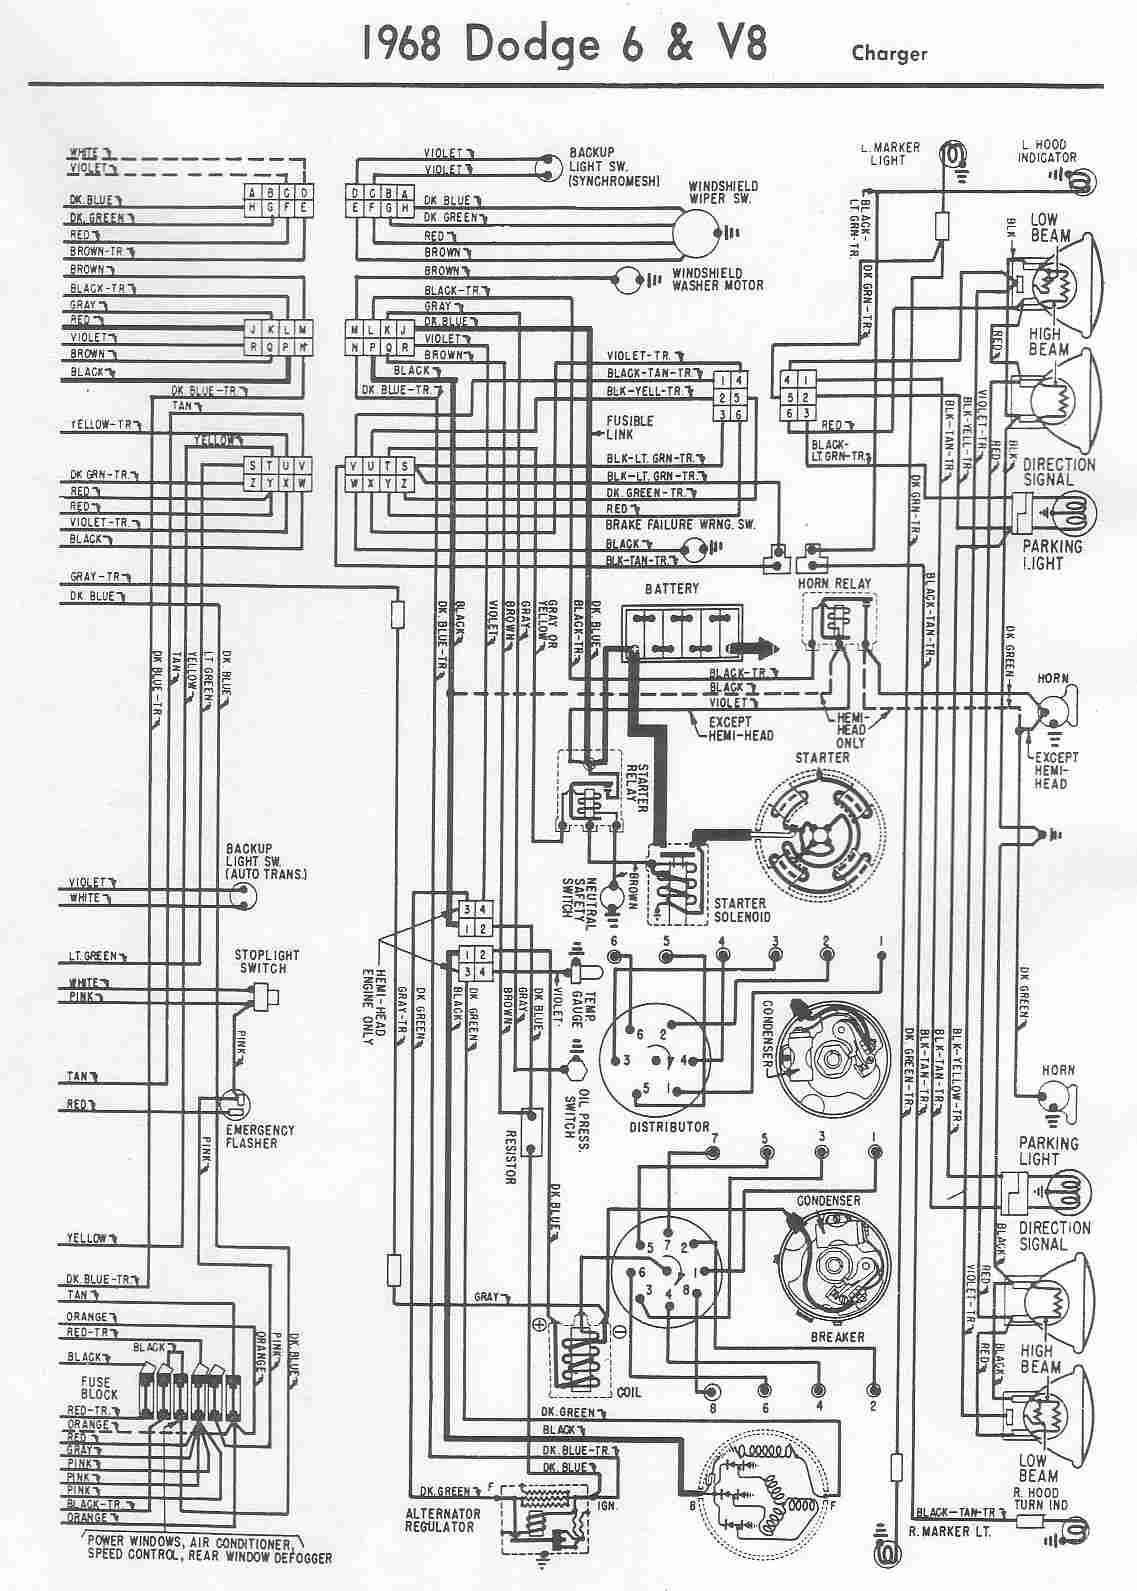 pickups wiring diagram free download wiring diagram schematic kia wiring diagrams free-wiring-diagrams.weebly.com   1991 dodge daytona wiring diagram wiring diagram rh alchemywings co